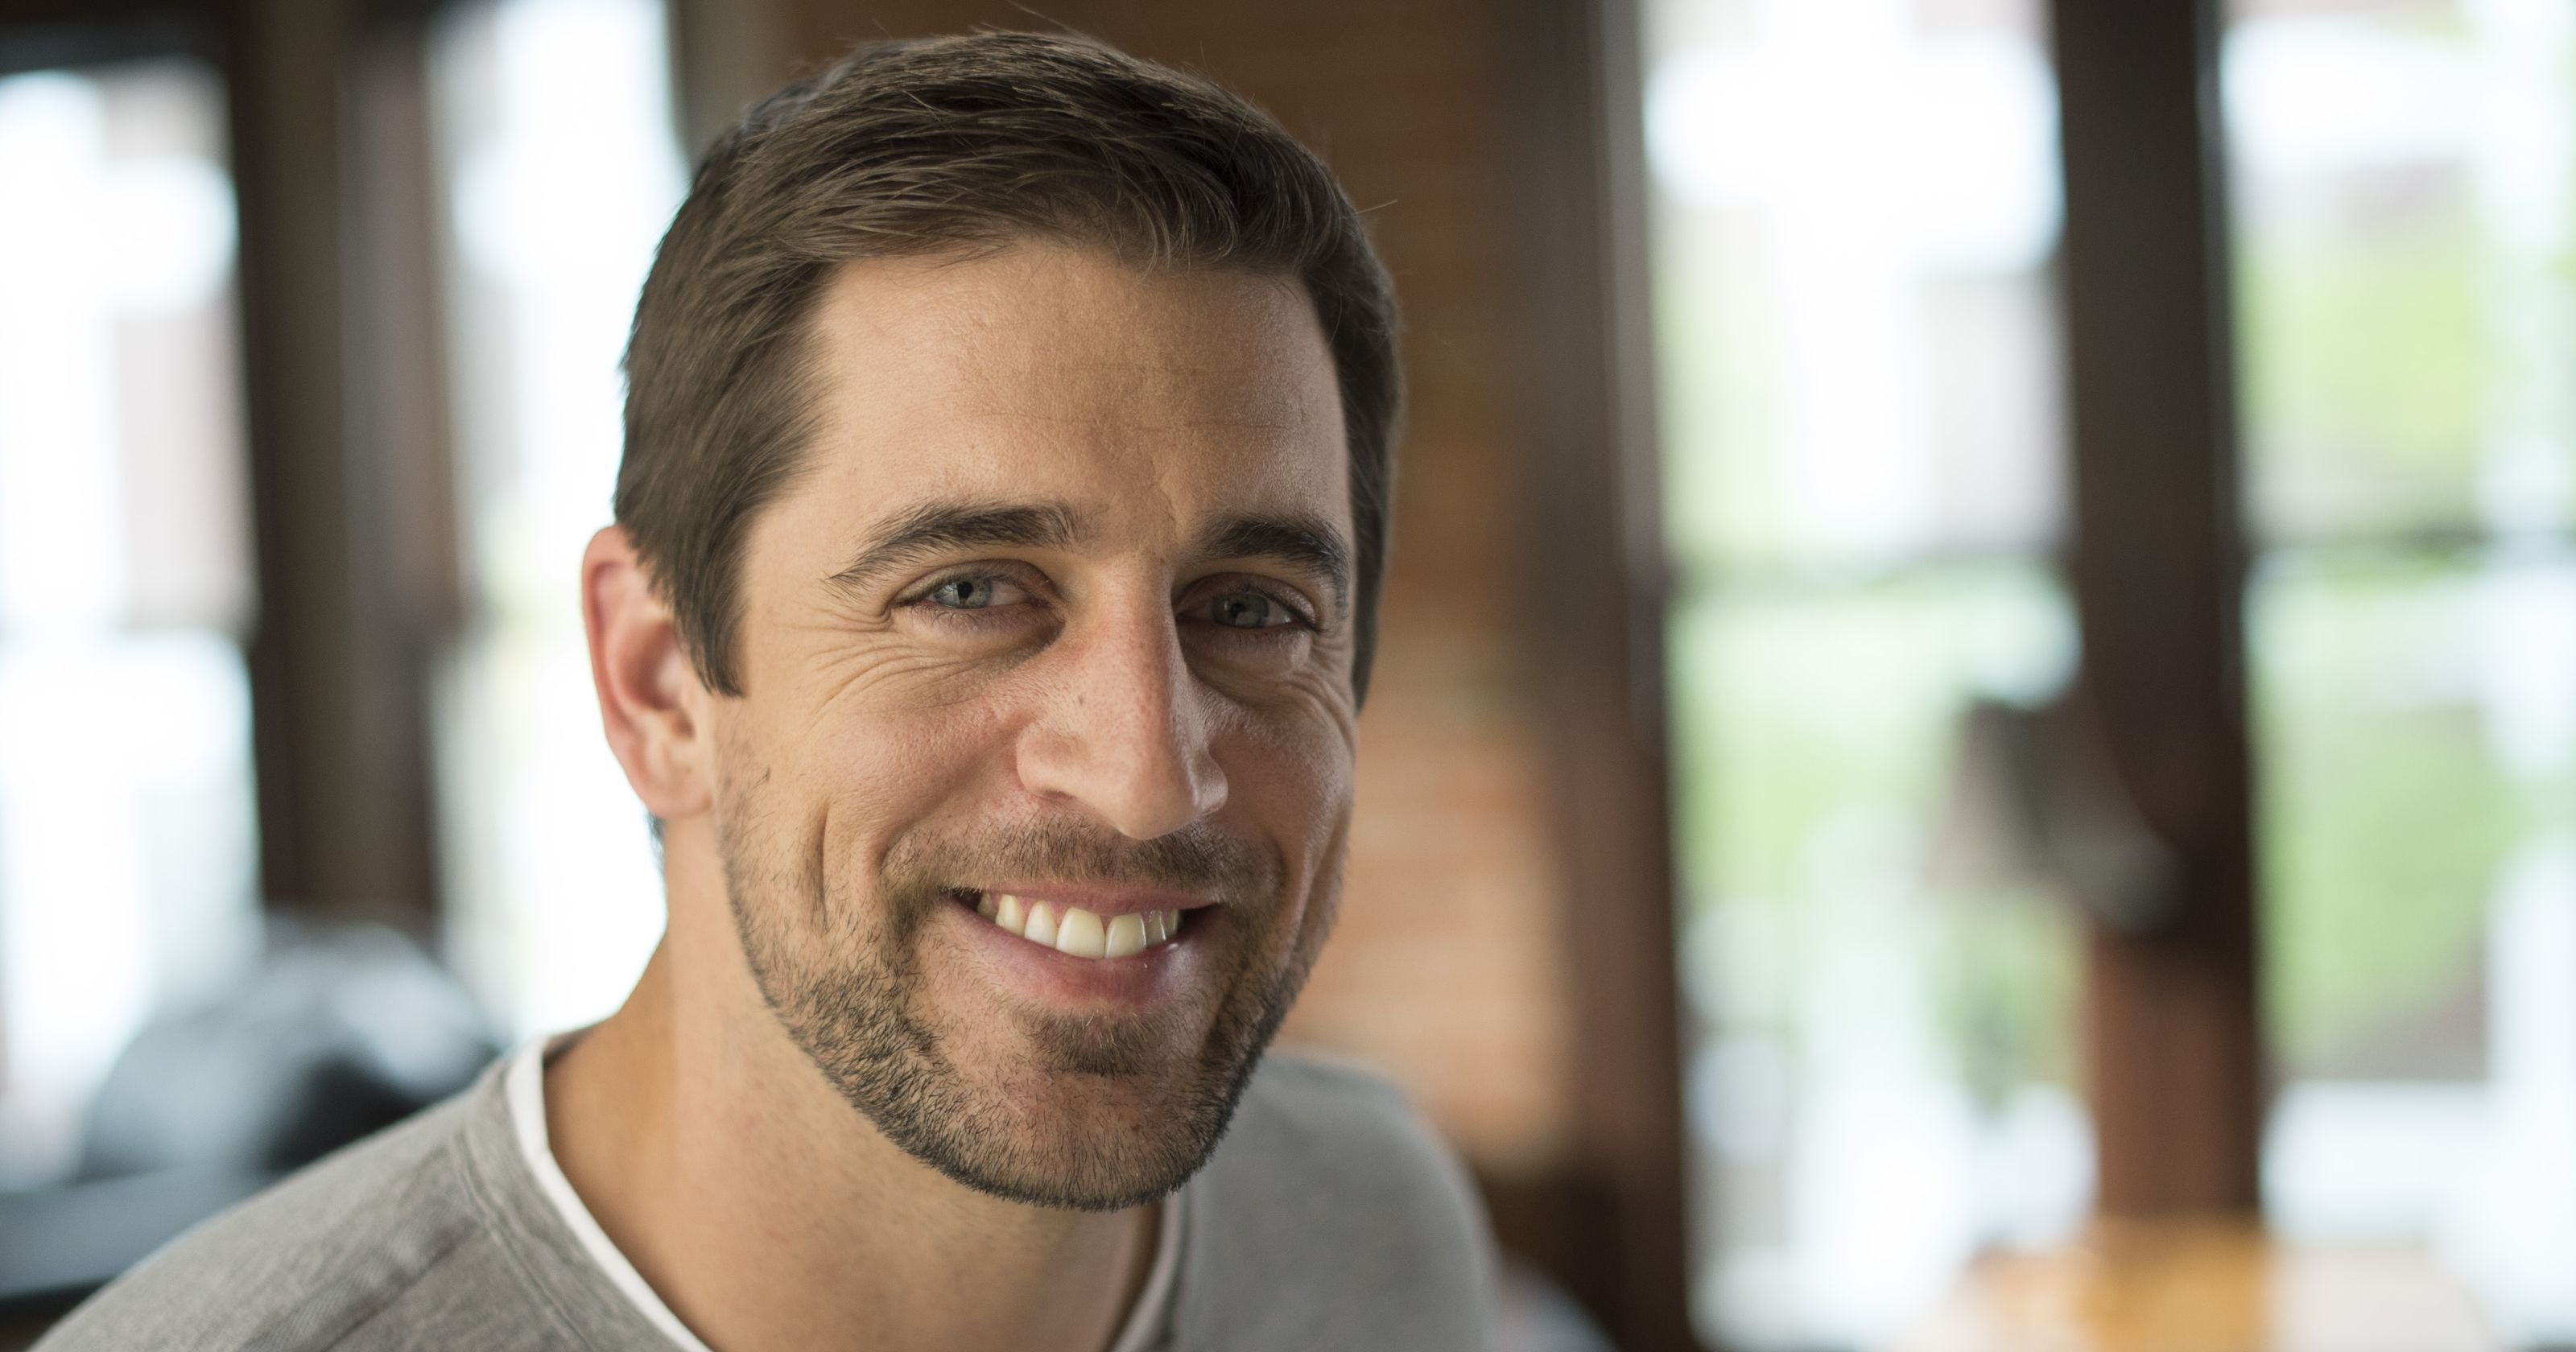 Prevea Health And Green Bay Packers Quarterback Aaron Rodgers Renewed Their Endorsement Agreement Aaron Rodgers Aaron Rodgers Family Famous People Celebrities